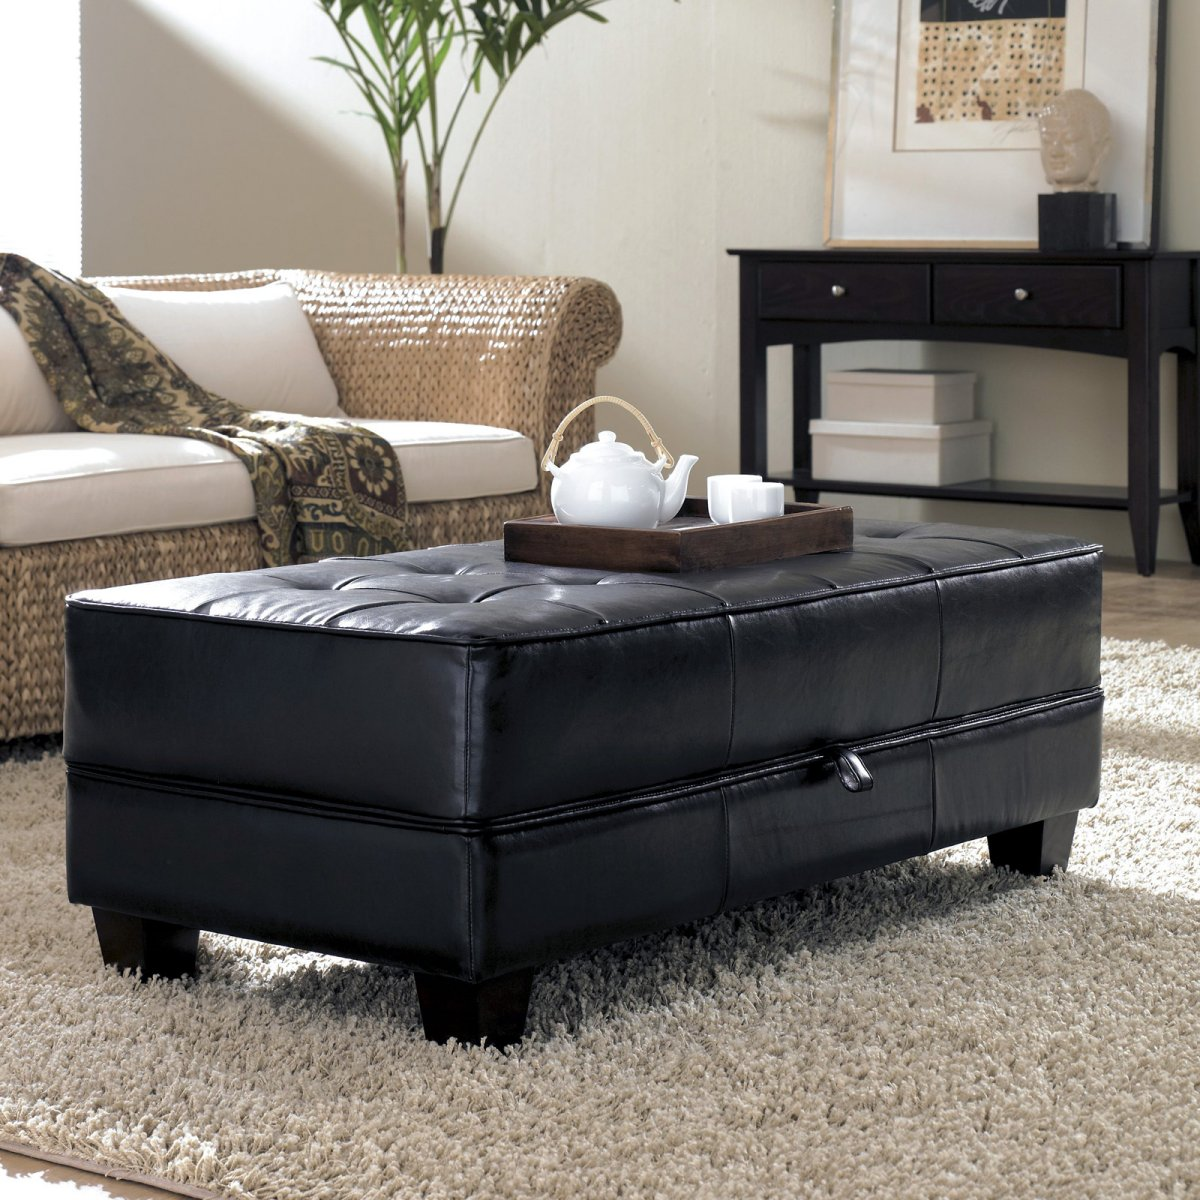 Image of: tufted leather ottoman coffee table